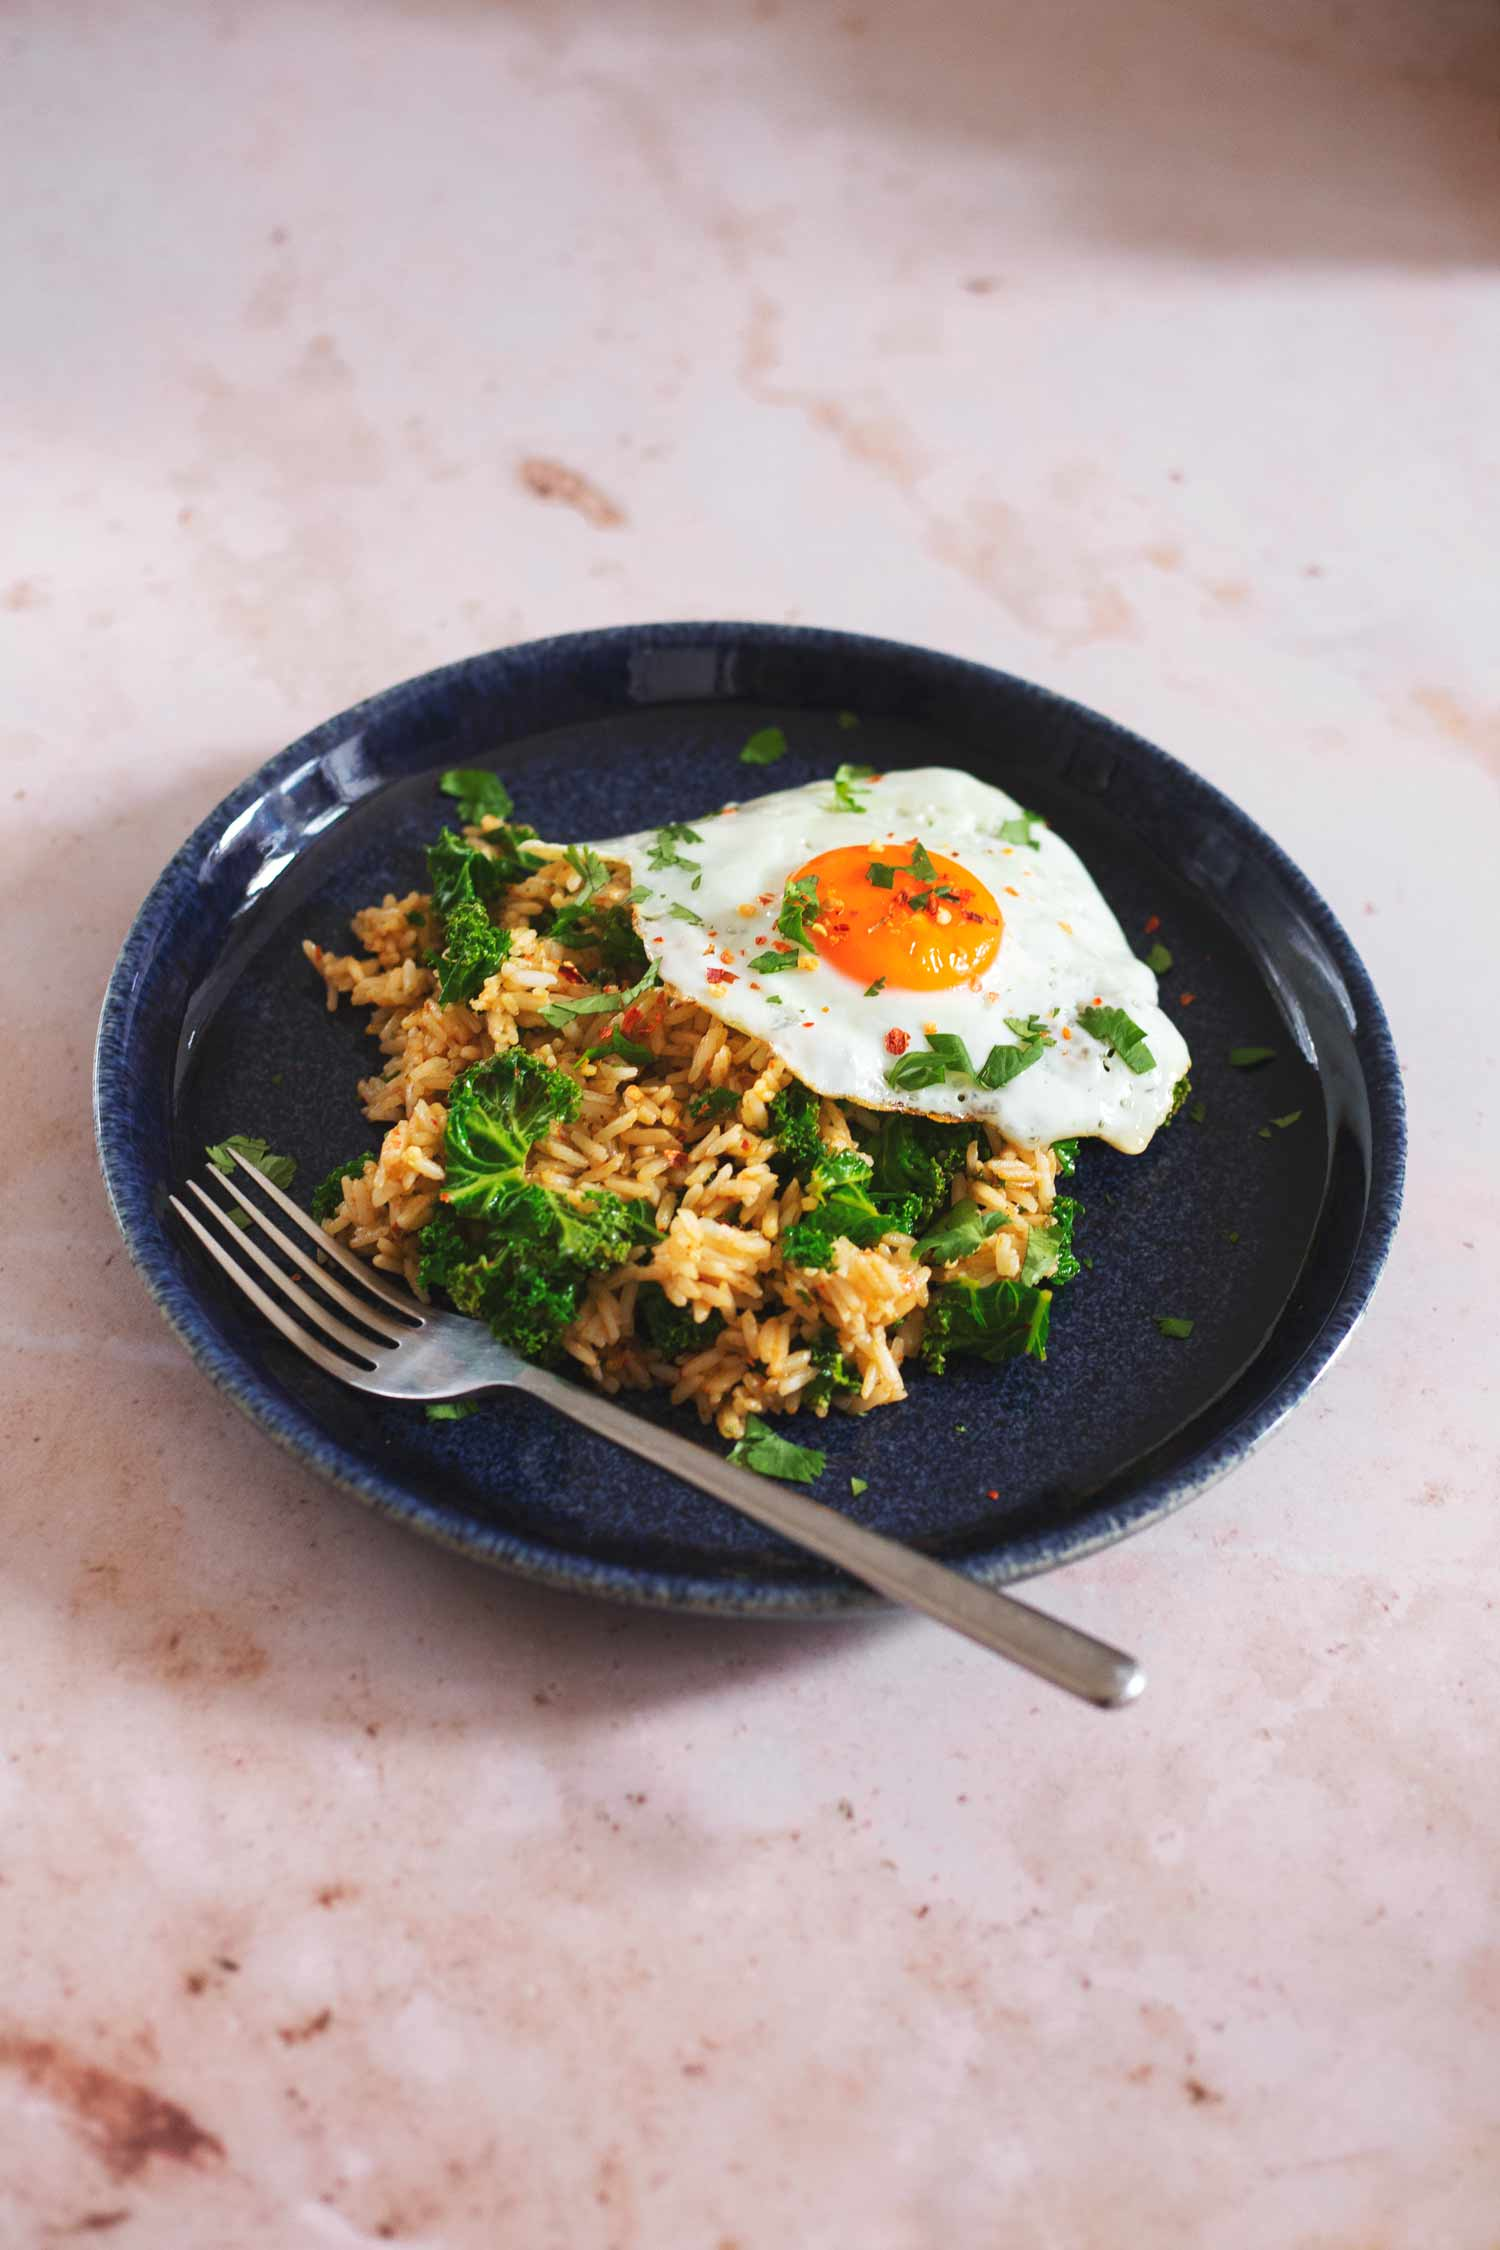 Fried rice with a fried egg